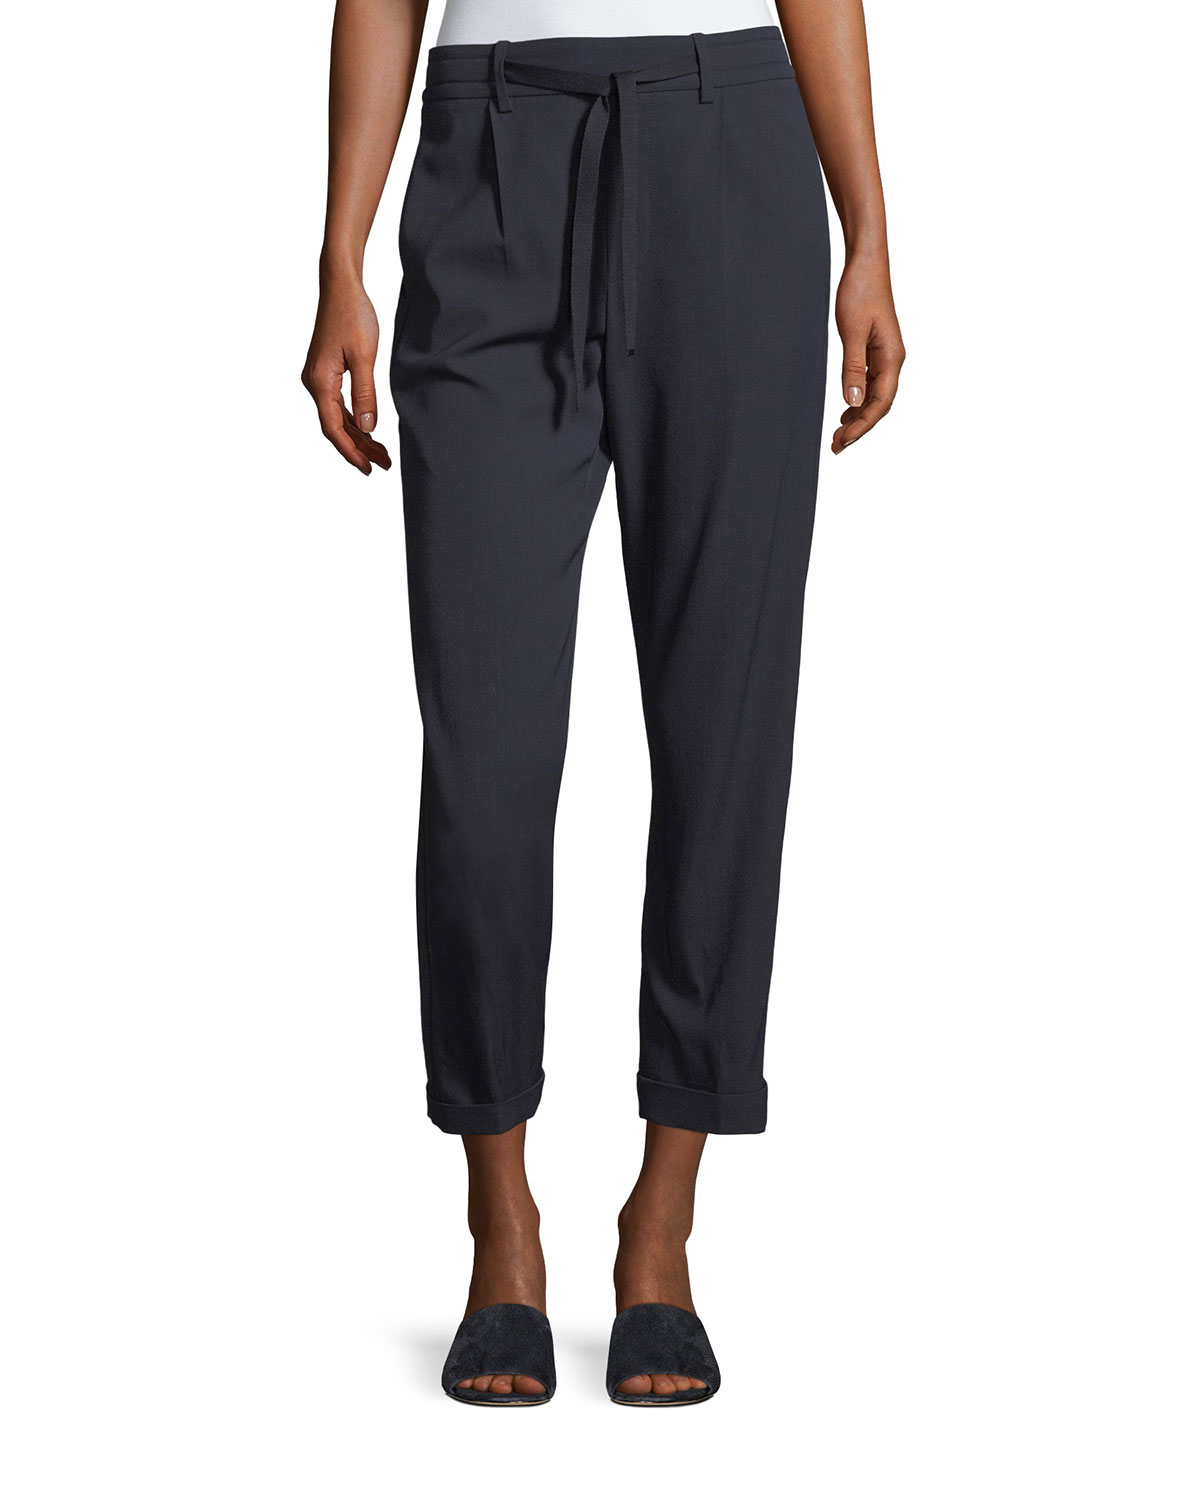 Vince Self Tie Side Strap Cropped Jogger Pants Neiman Marcus